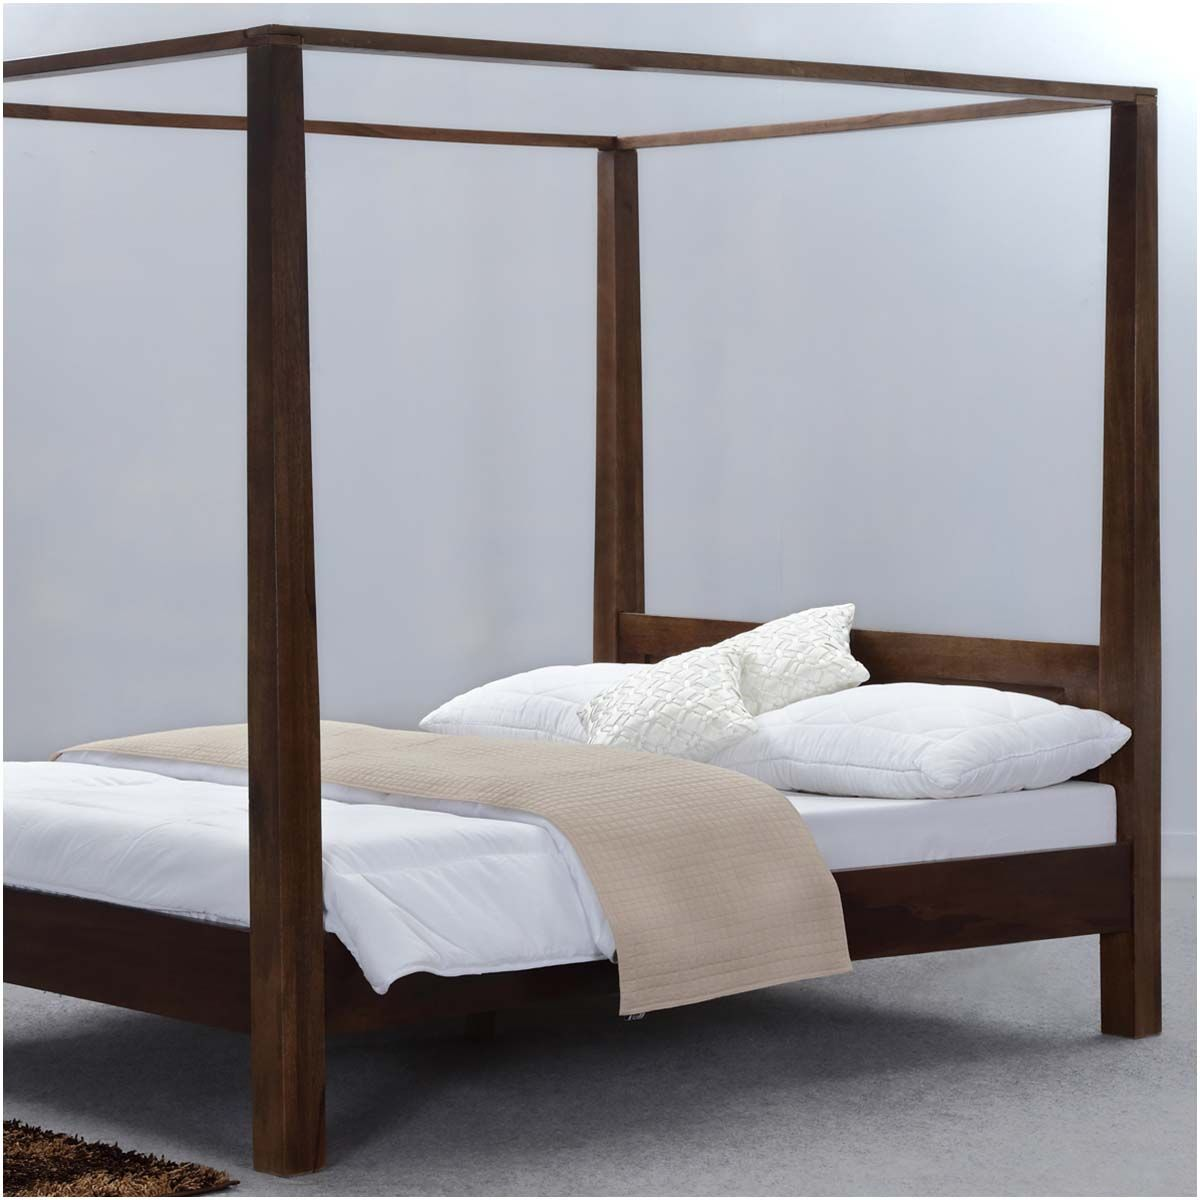 Sierra Living Concepts King Size Canopy Bed Platform Canopy Bed Modern Canopy Bed